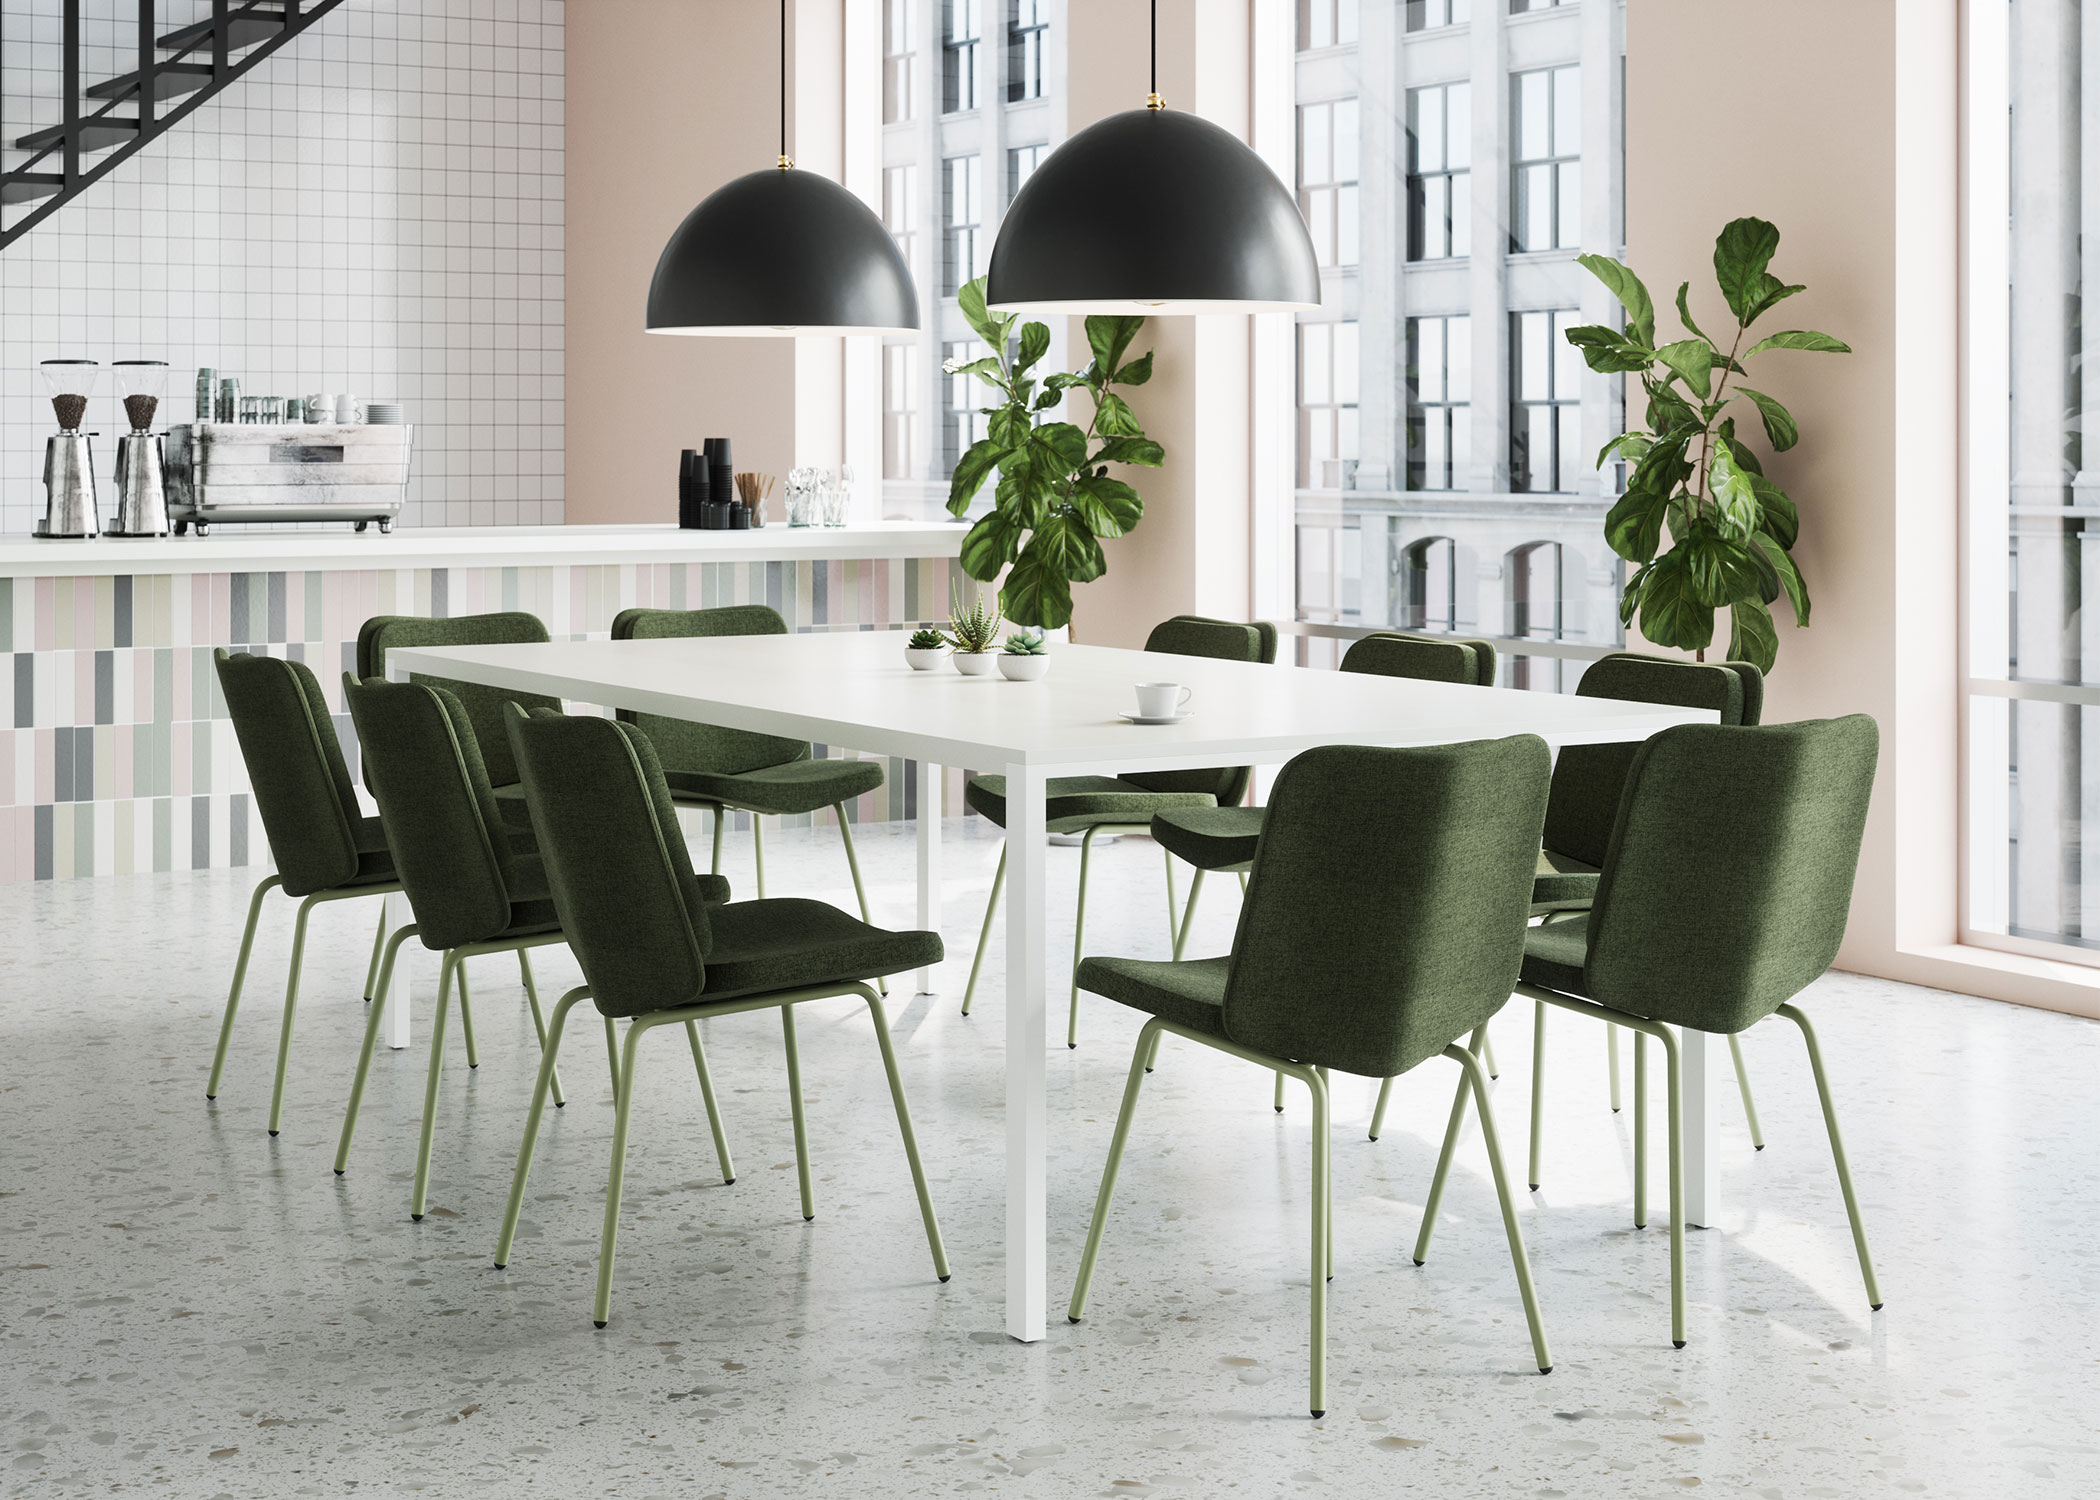 Modern Dining Chairs in Dark Green Around  a Communal Table at Trendy Coffee Shop